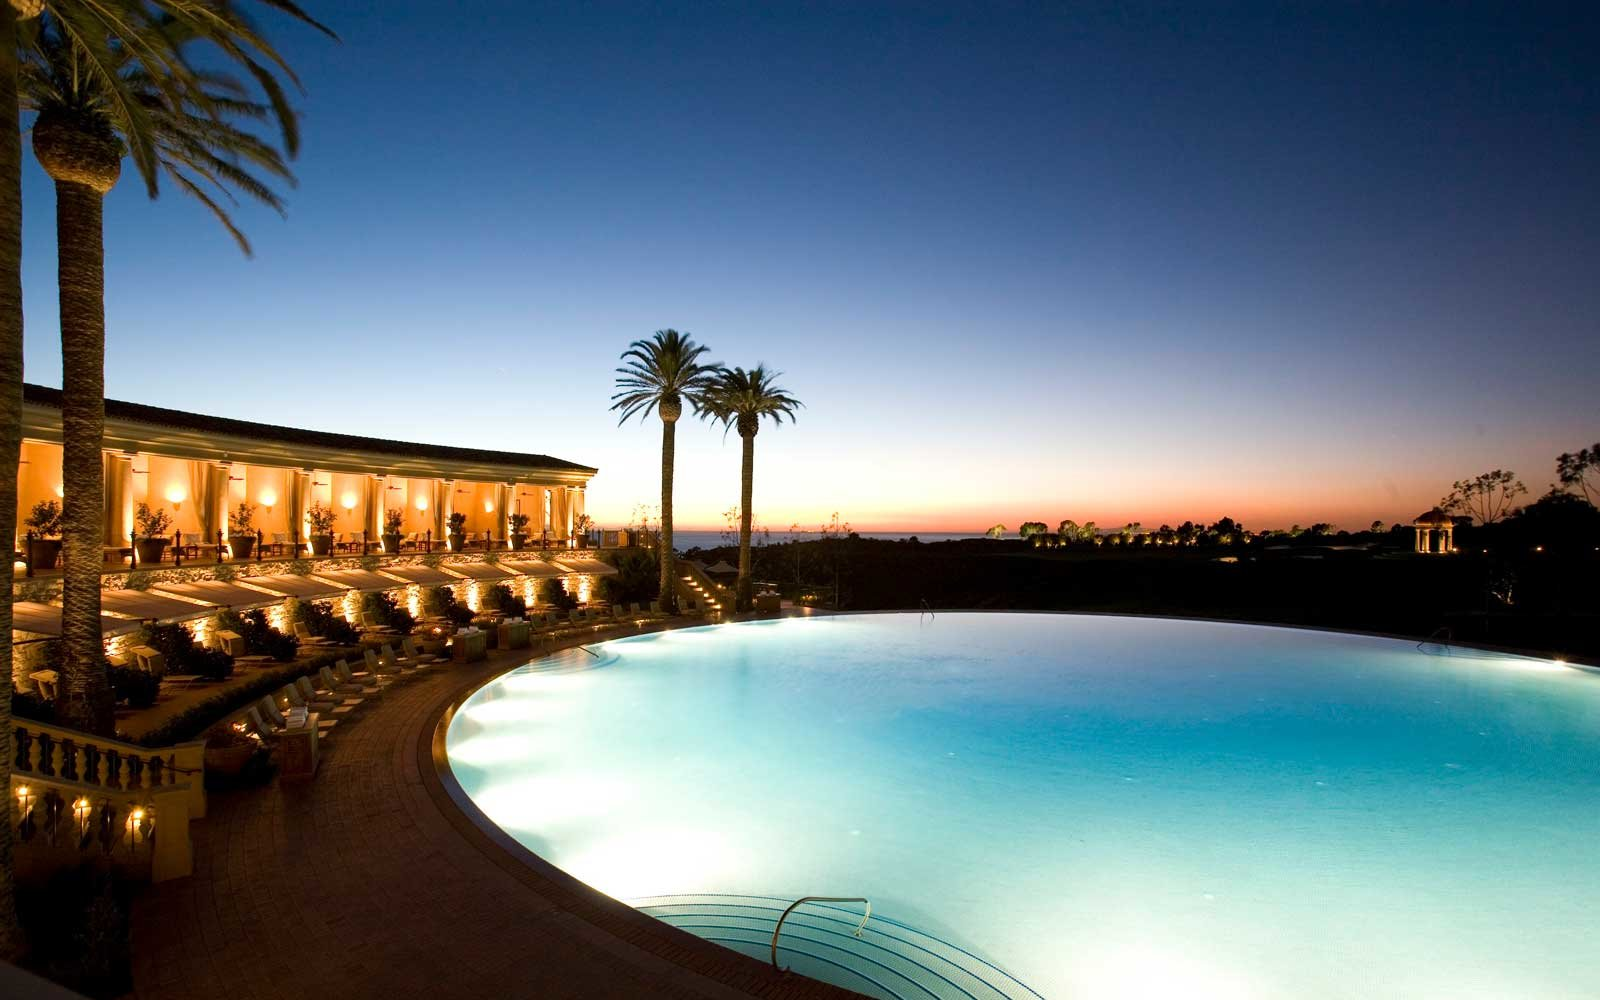 Nighttime view of the pool at Pelican Hill resort in California